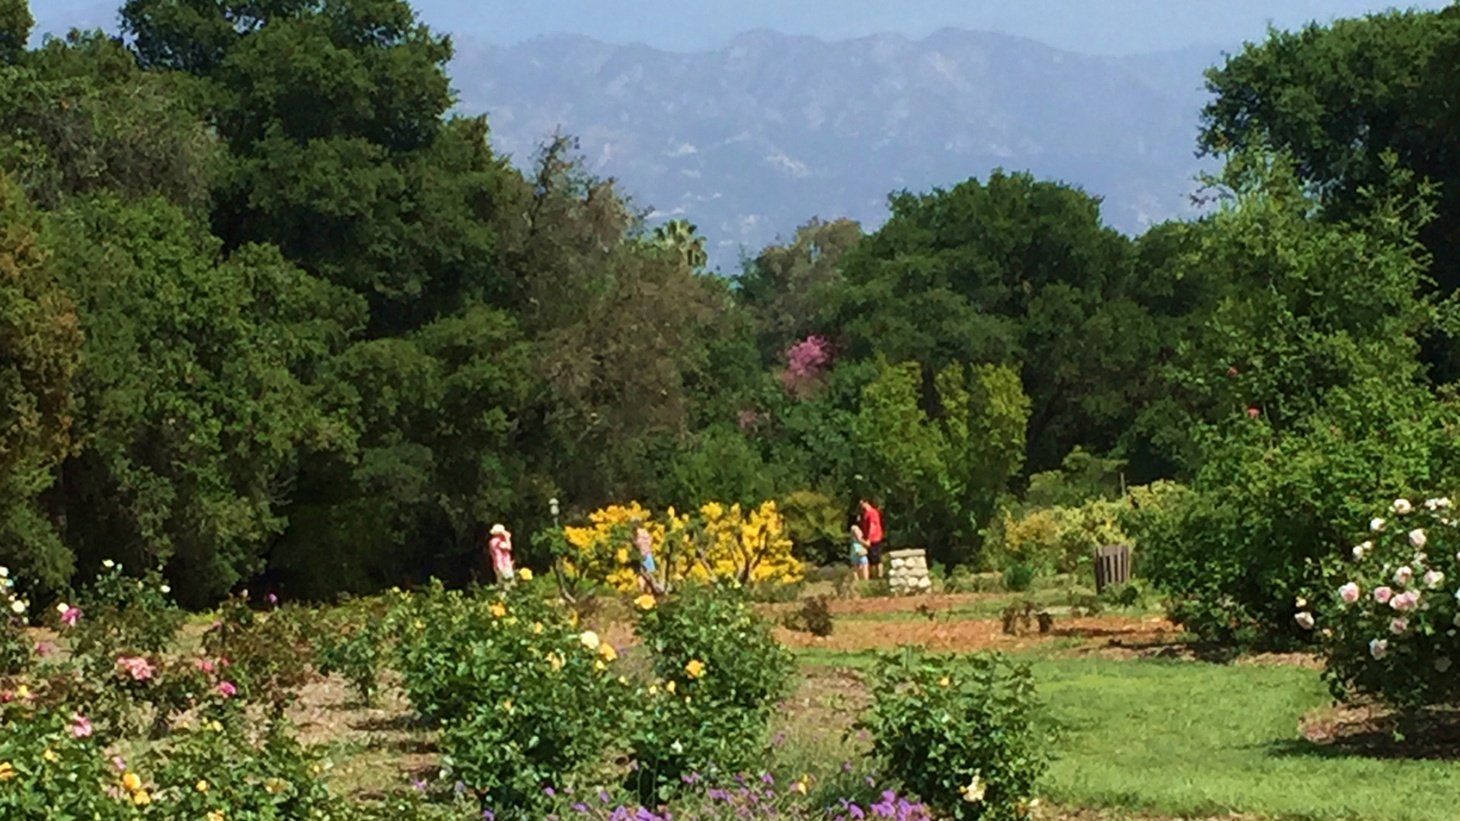 Edward Goldman recounts his refreshing visit to the beautiful Descanso Gardens this past Easter Sunday.